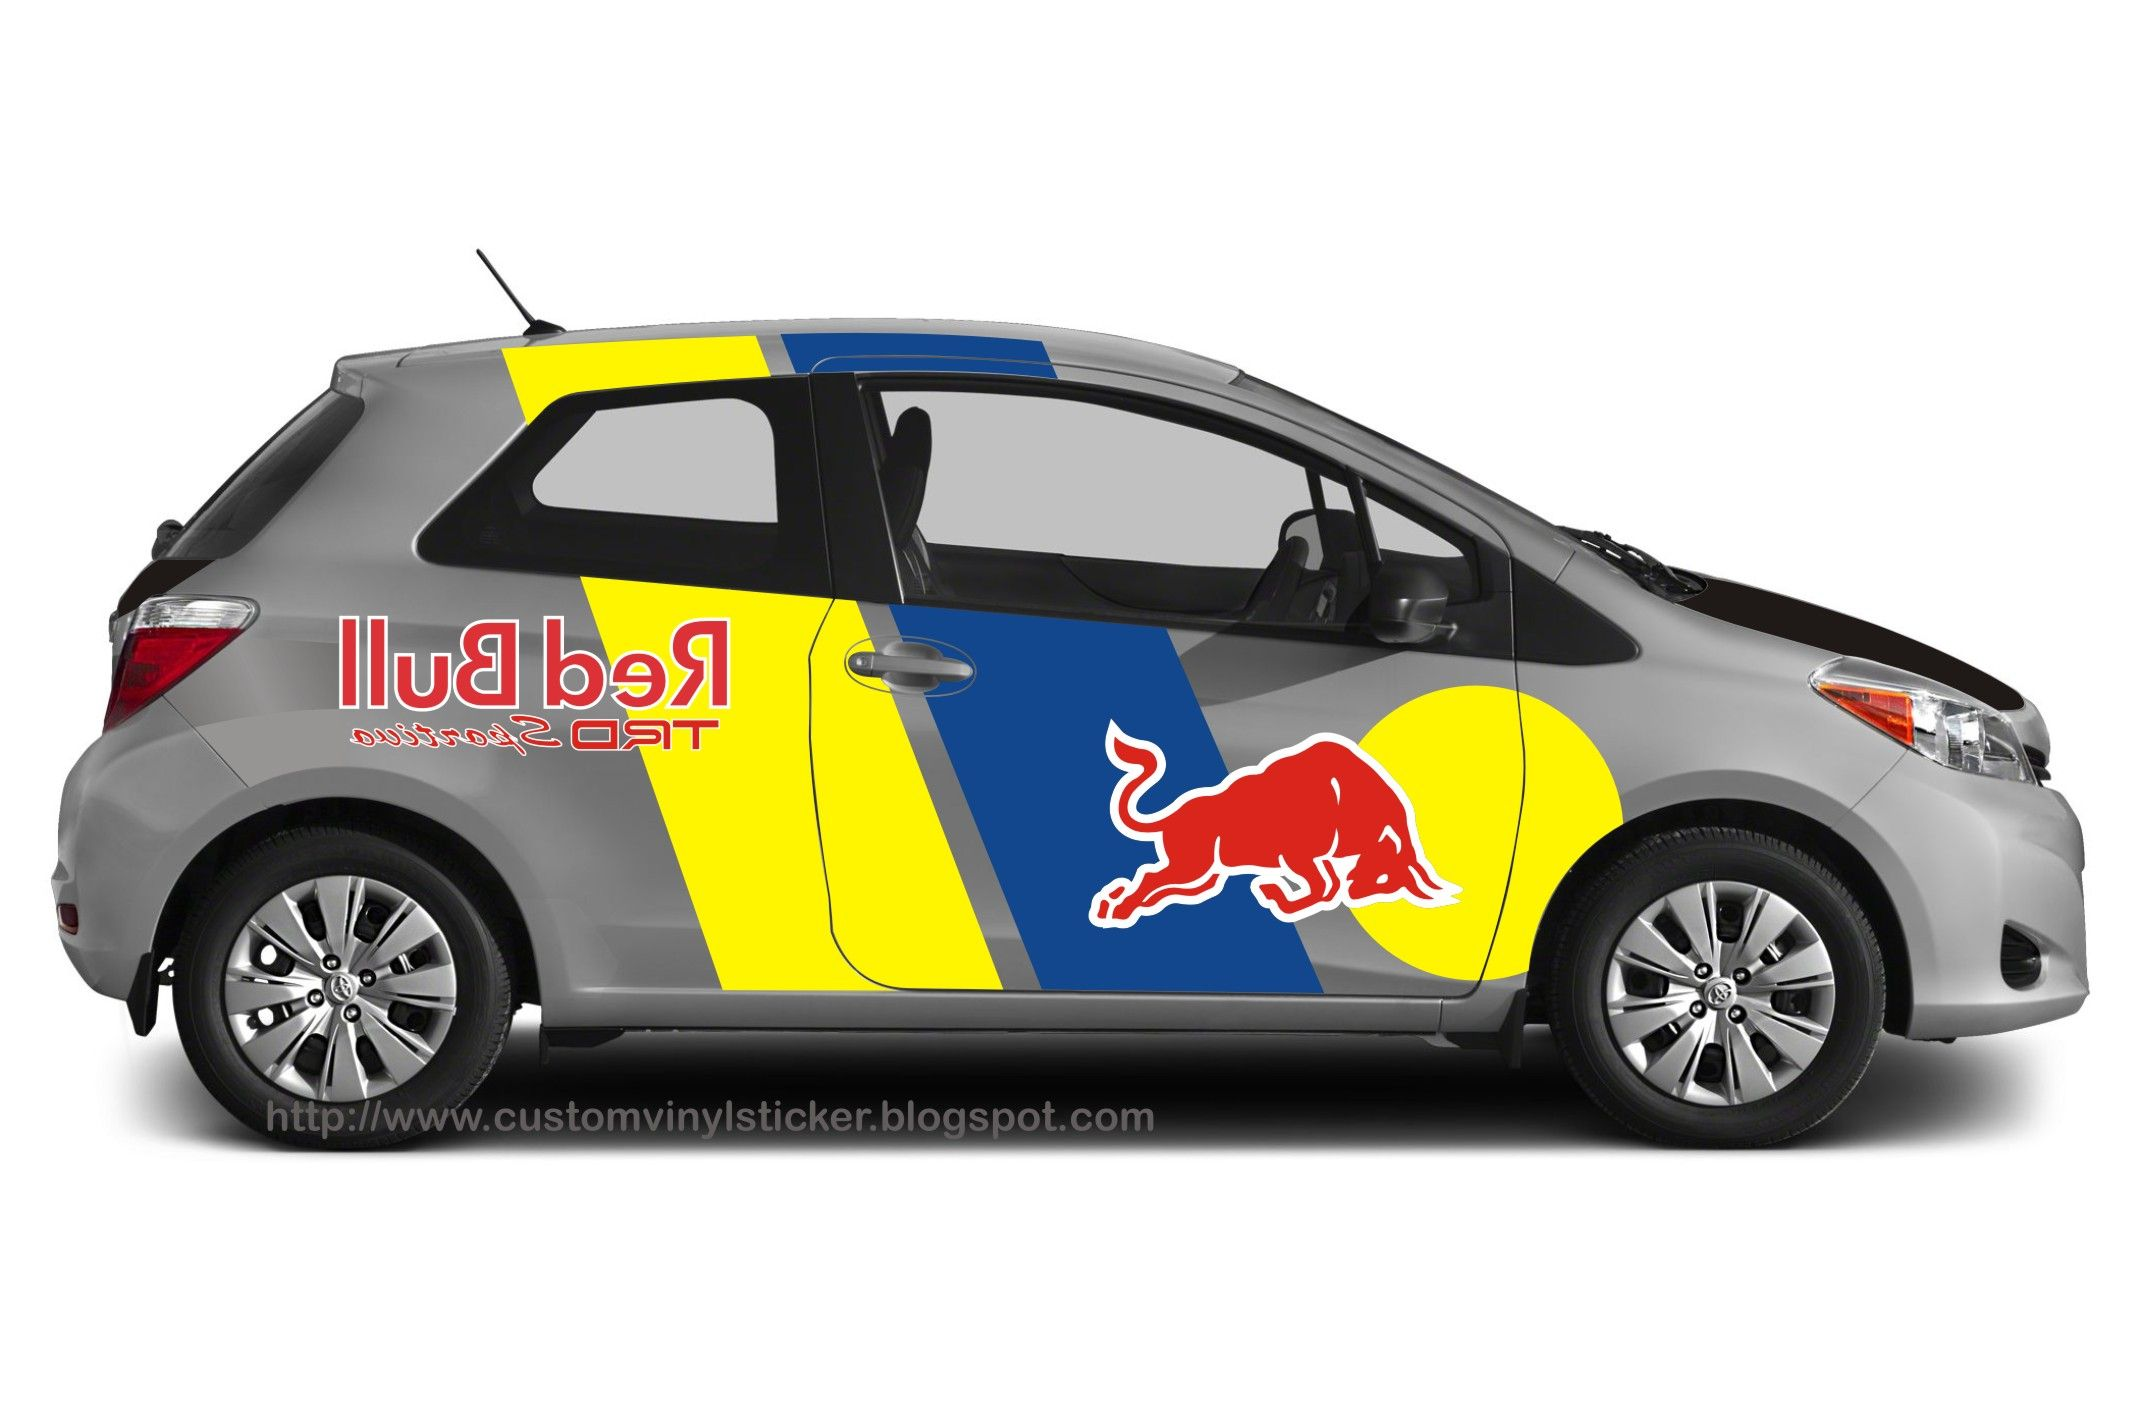 Toyota Yaris Trd All New Vellfire Interior Red Bull Sportivo Sticker Concept By